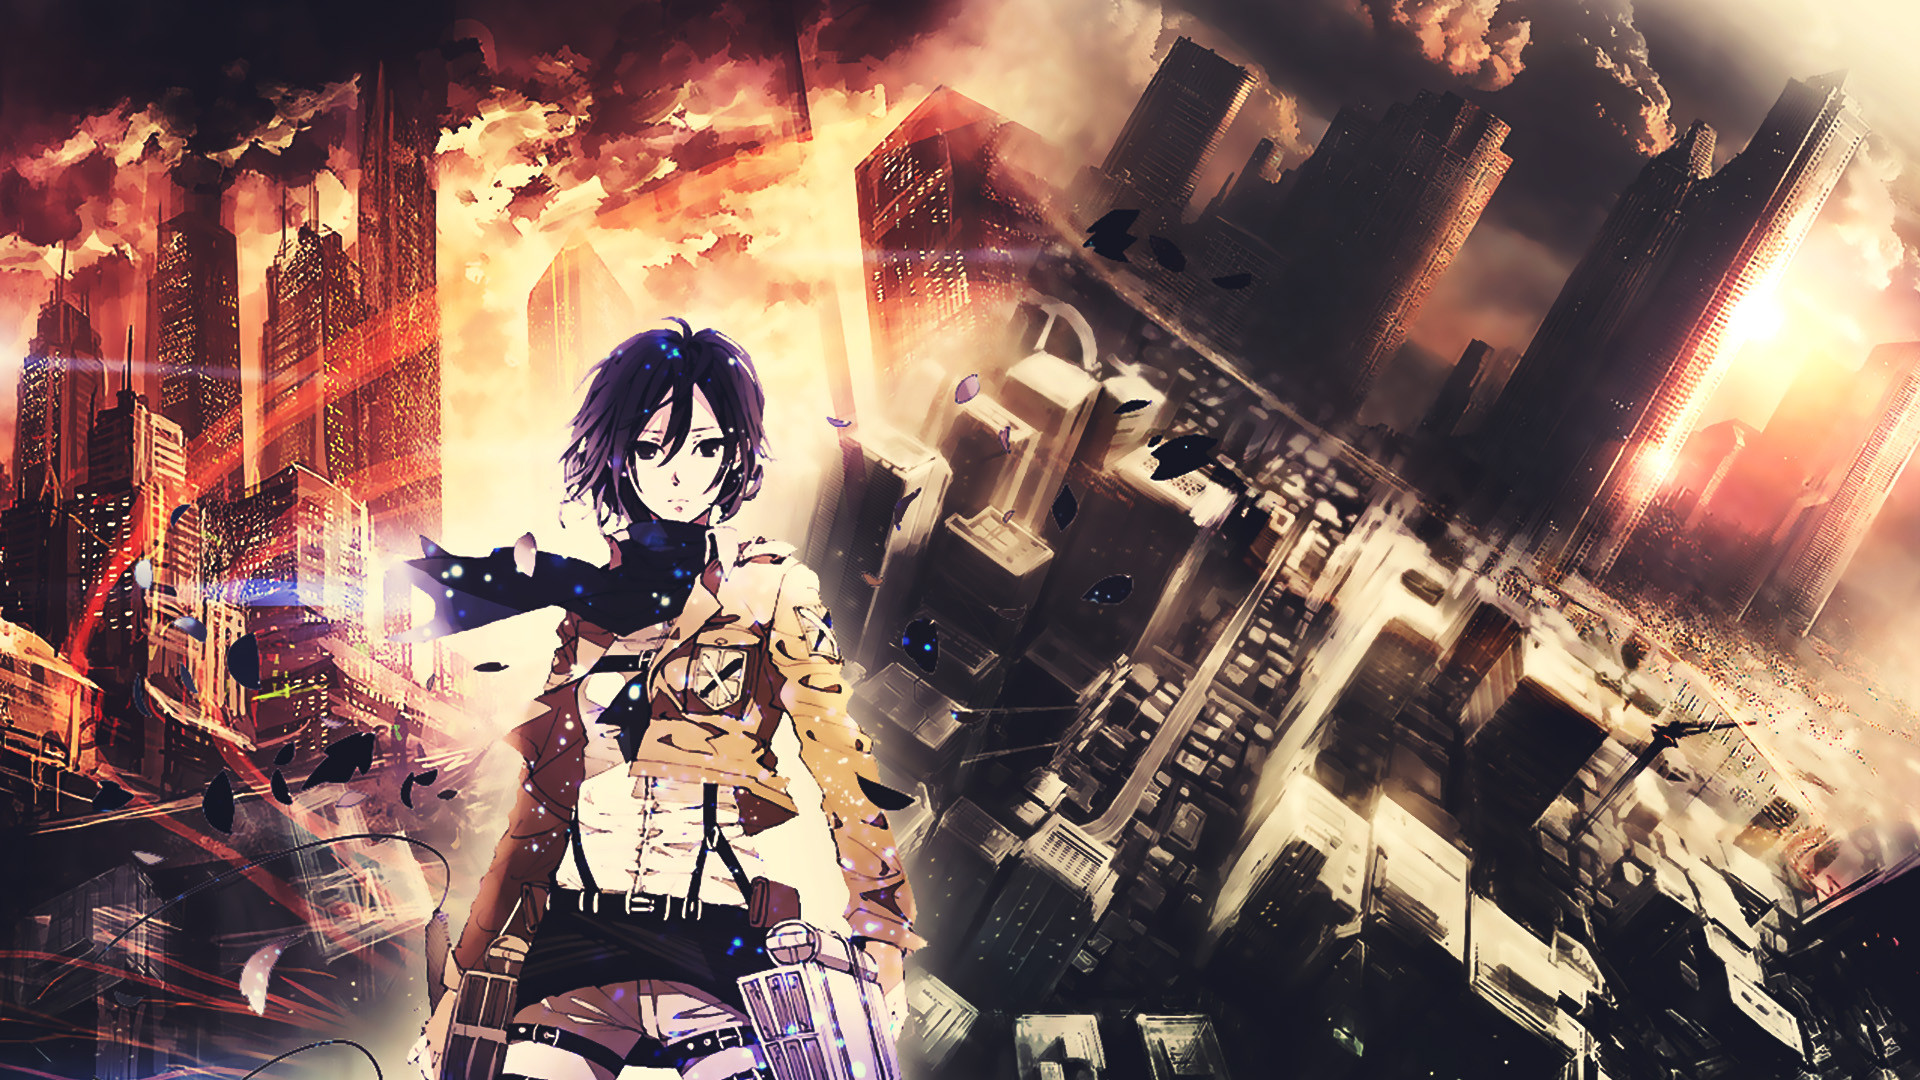 Shingeki-no-Kyojin-Mikasa-Desktop-HD-Wallpaper.jpg